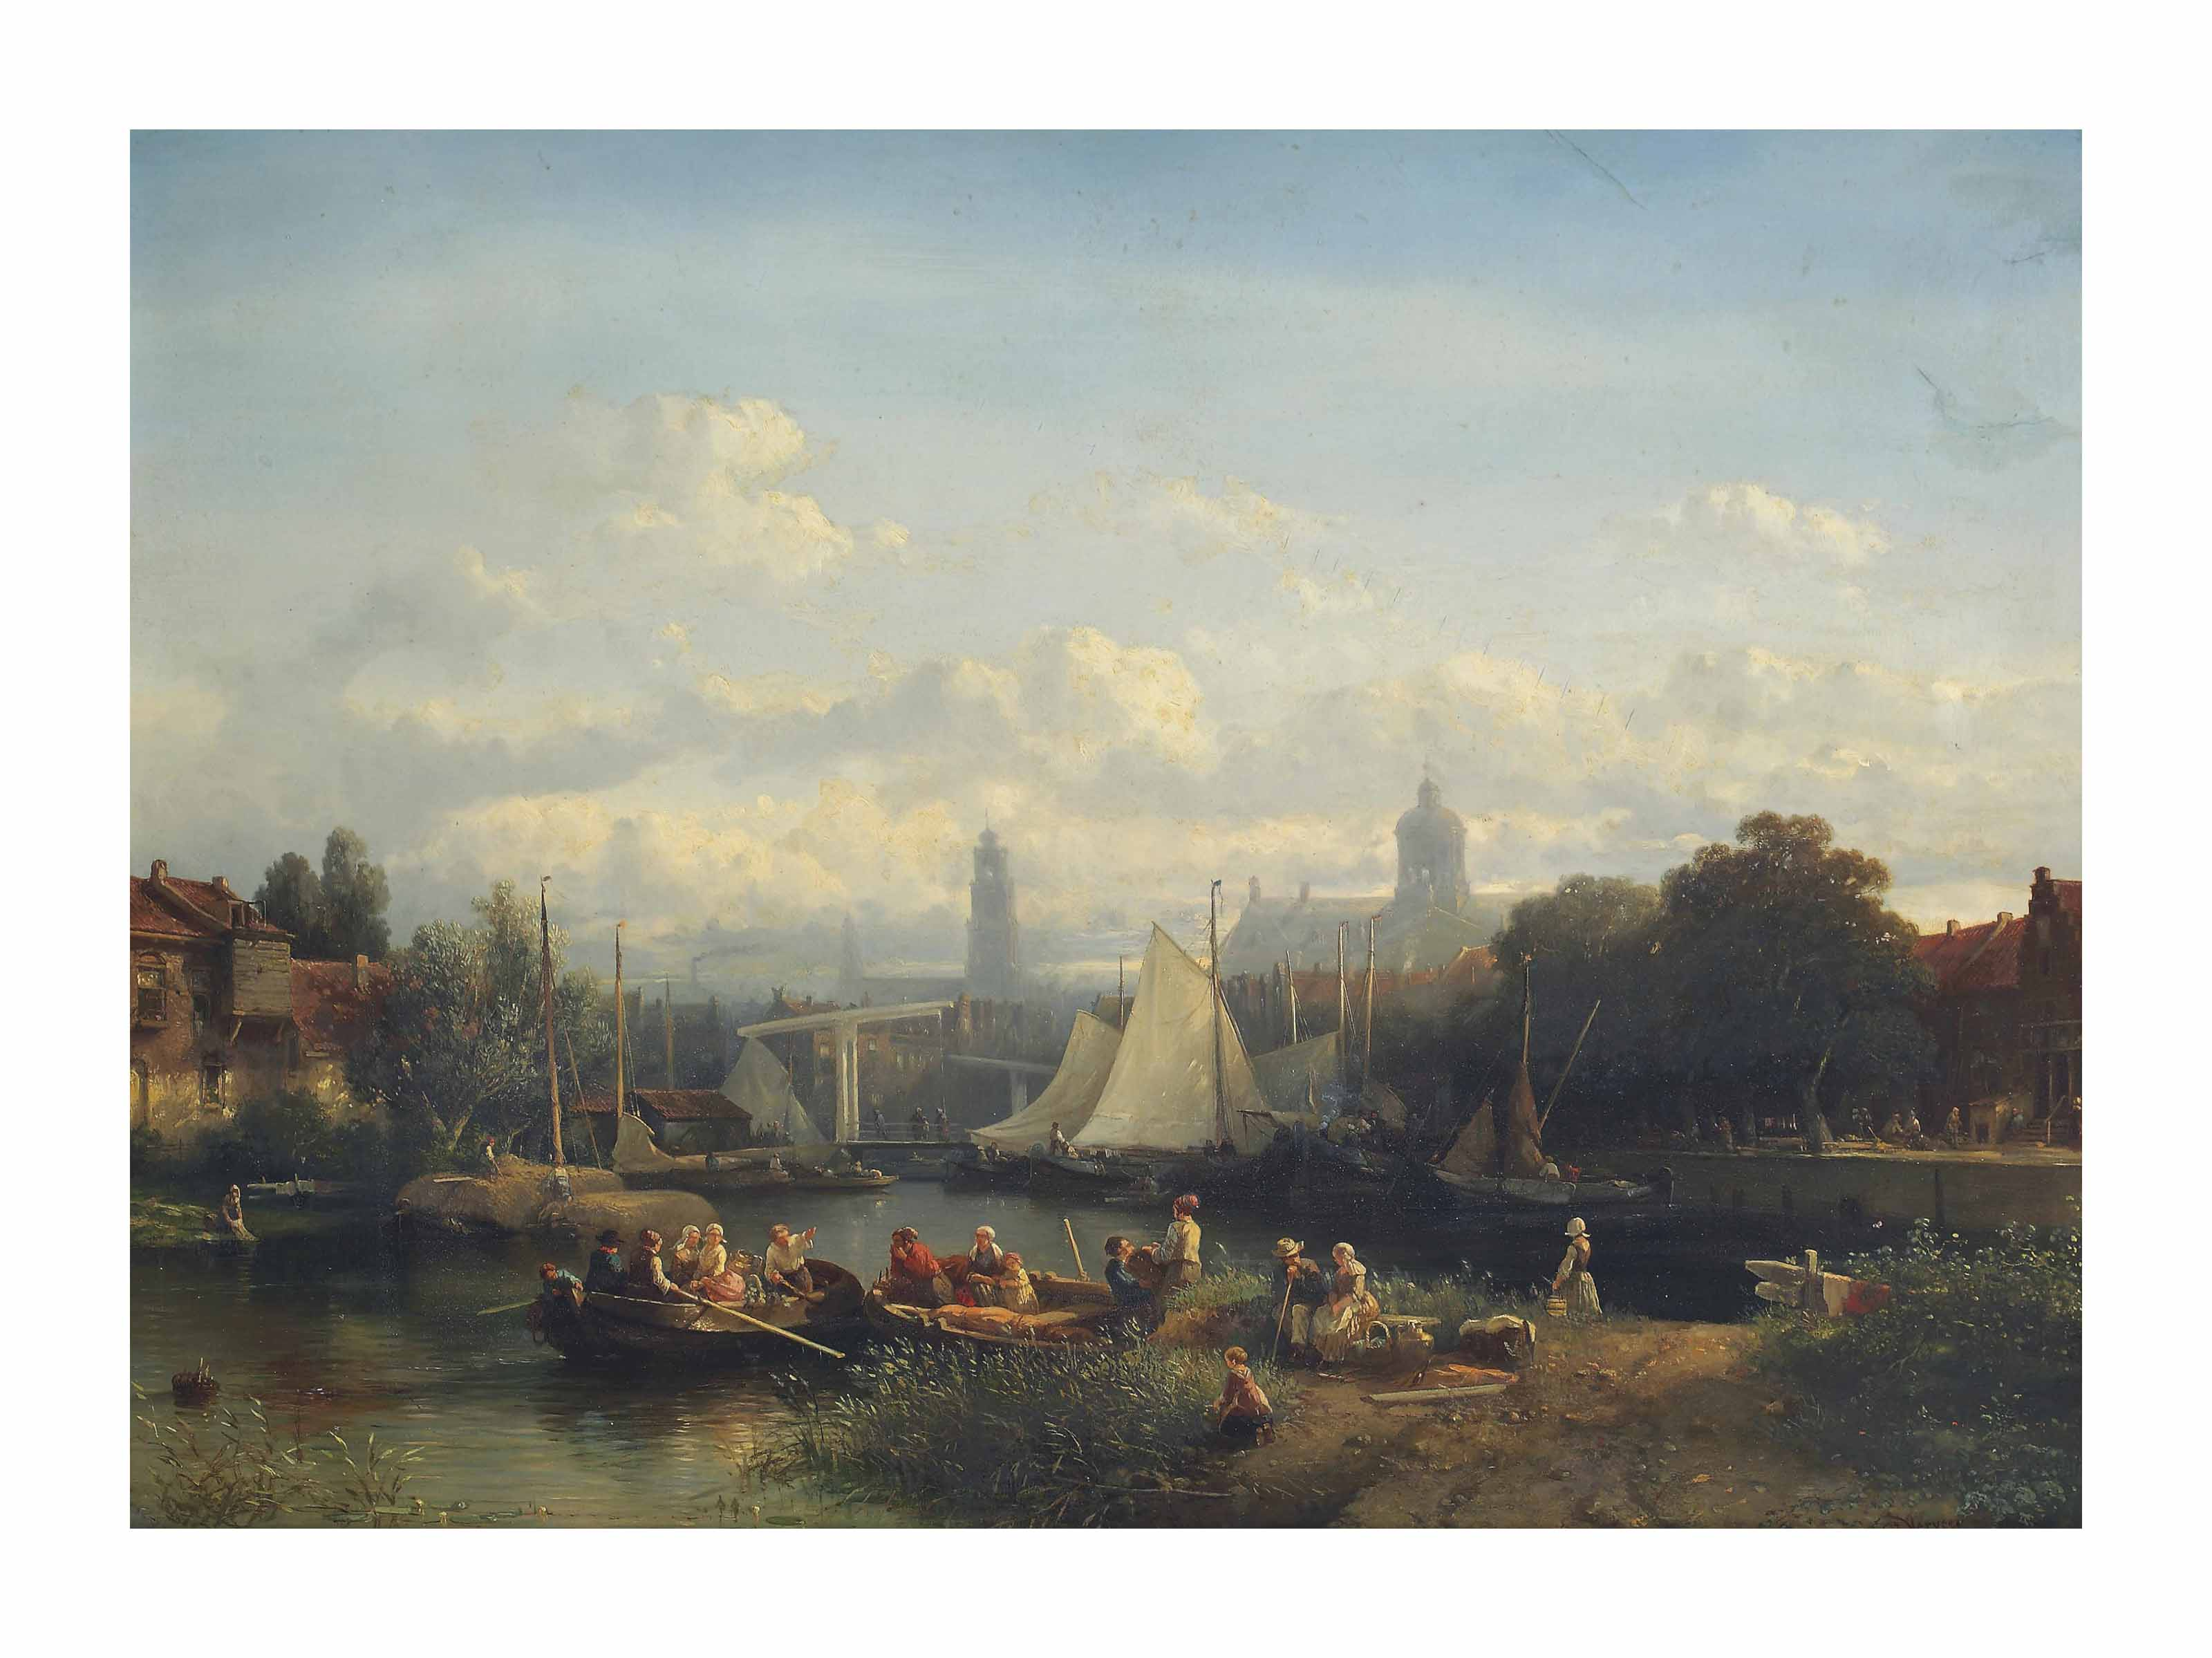 A capriccio view of Amsterdam with figures preparing for a boattrip on a sunny day